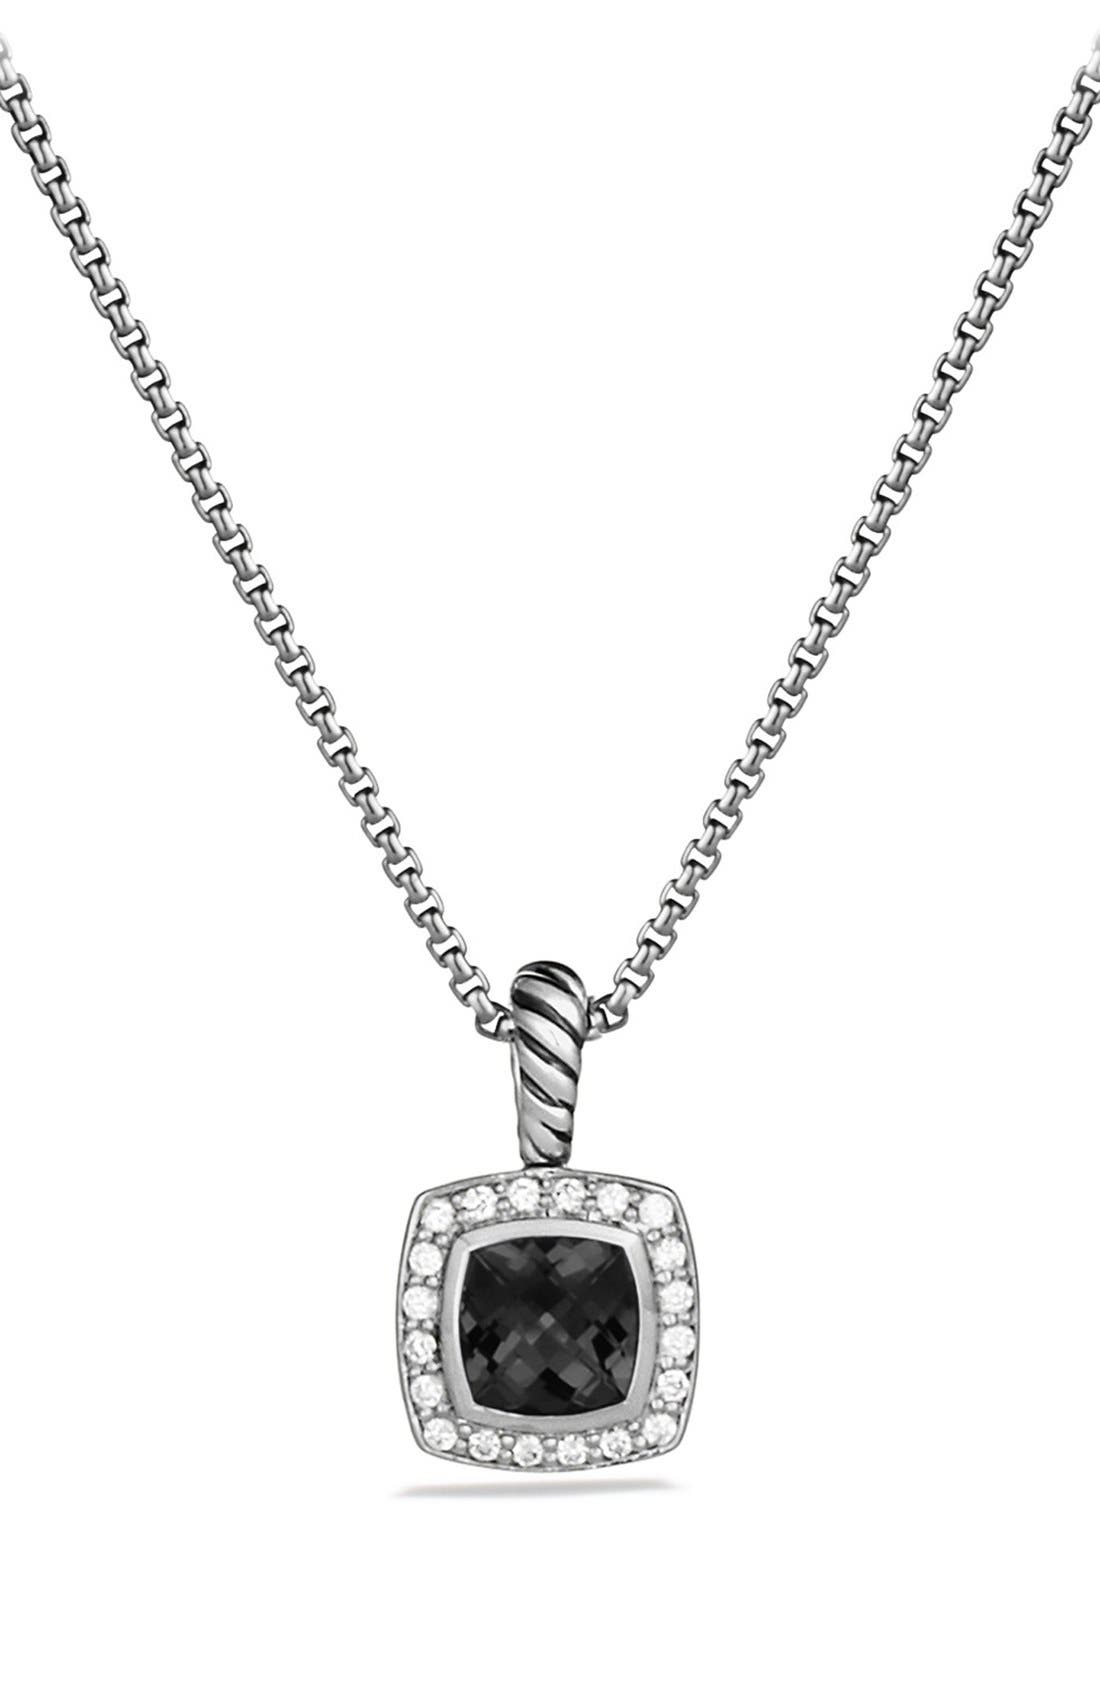 'Albion' Petite Pendant with Semiprecious Stone & Diamonds on Chain,                             Main thumbnail 1, color,                             BLACK ONYX